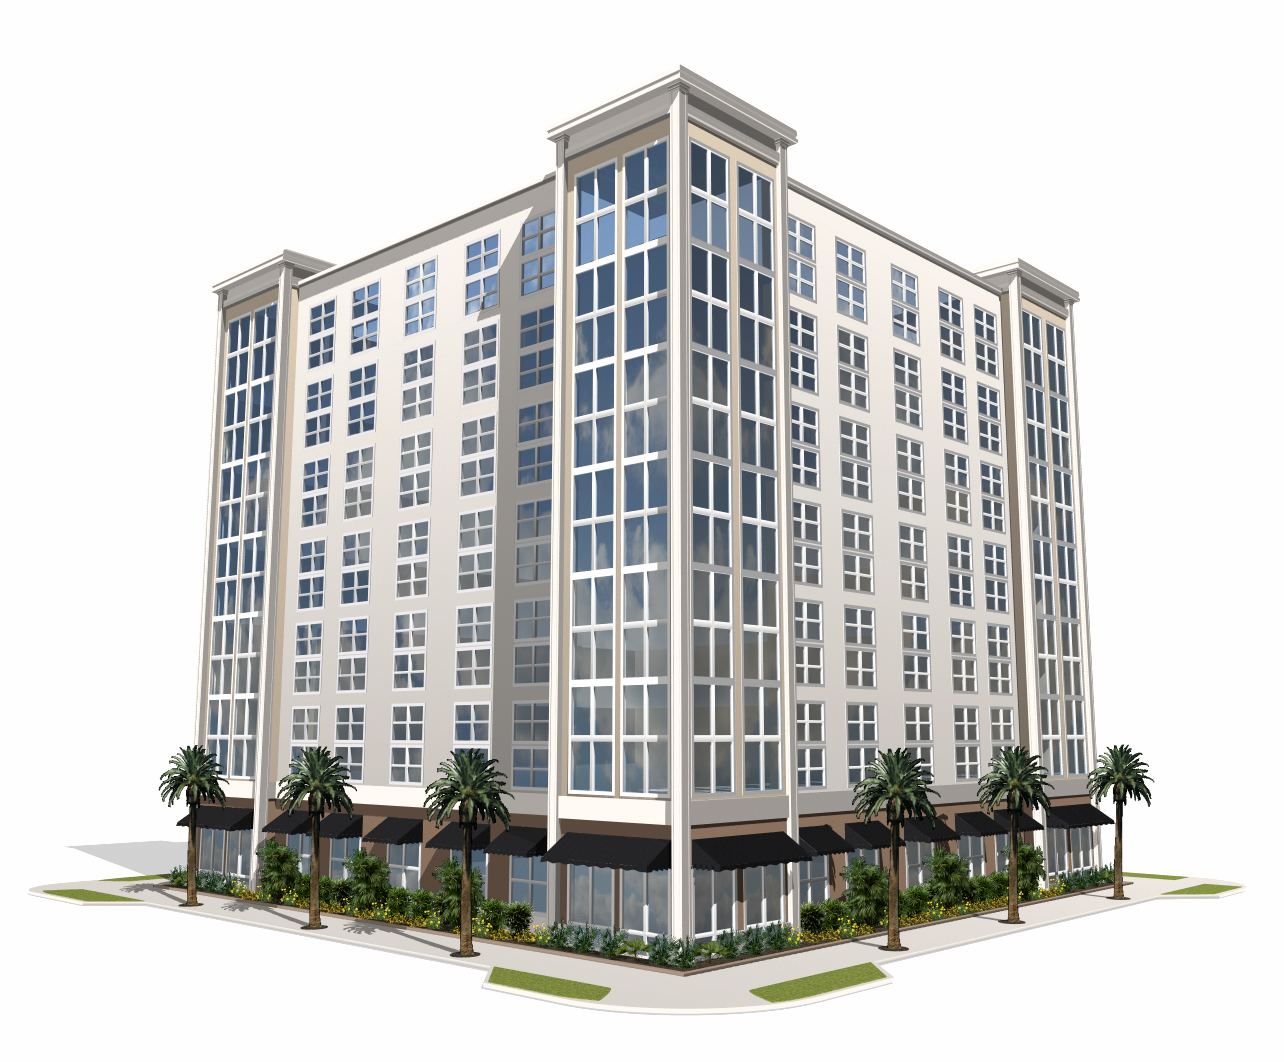 Office building clipart - Building HD PNG